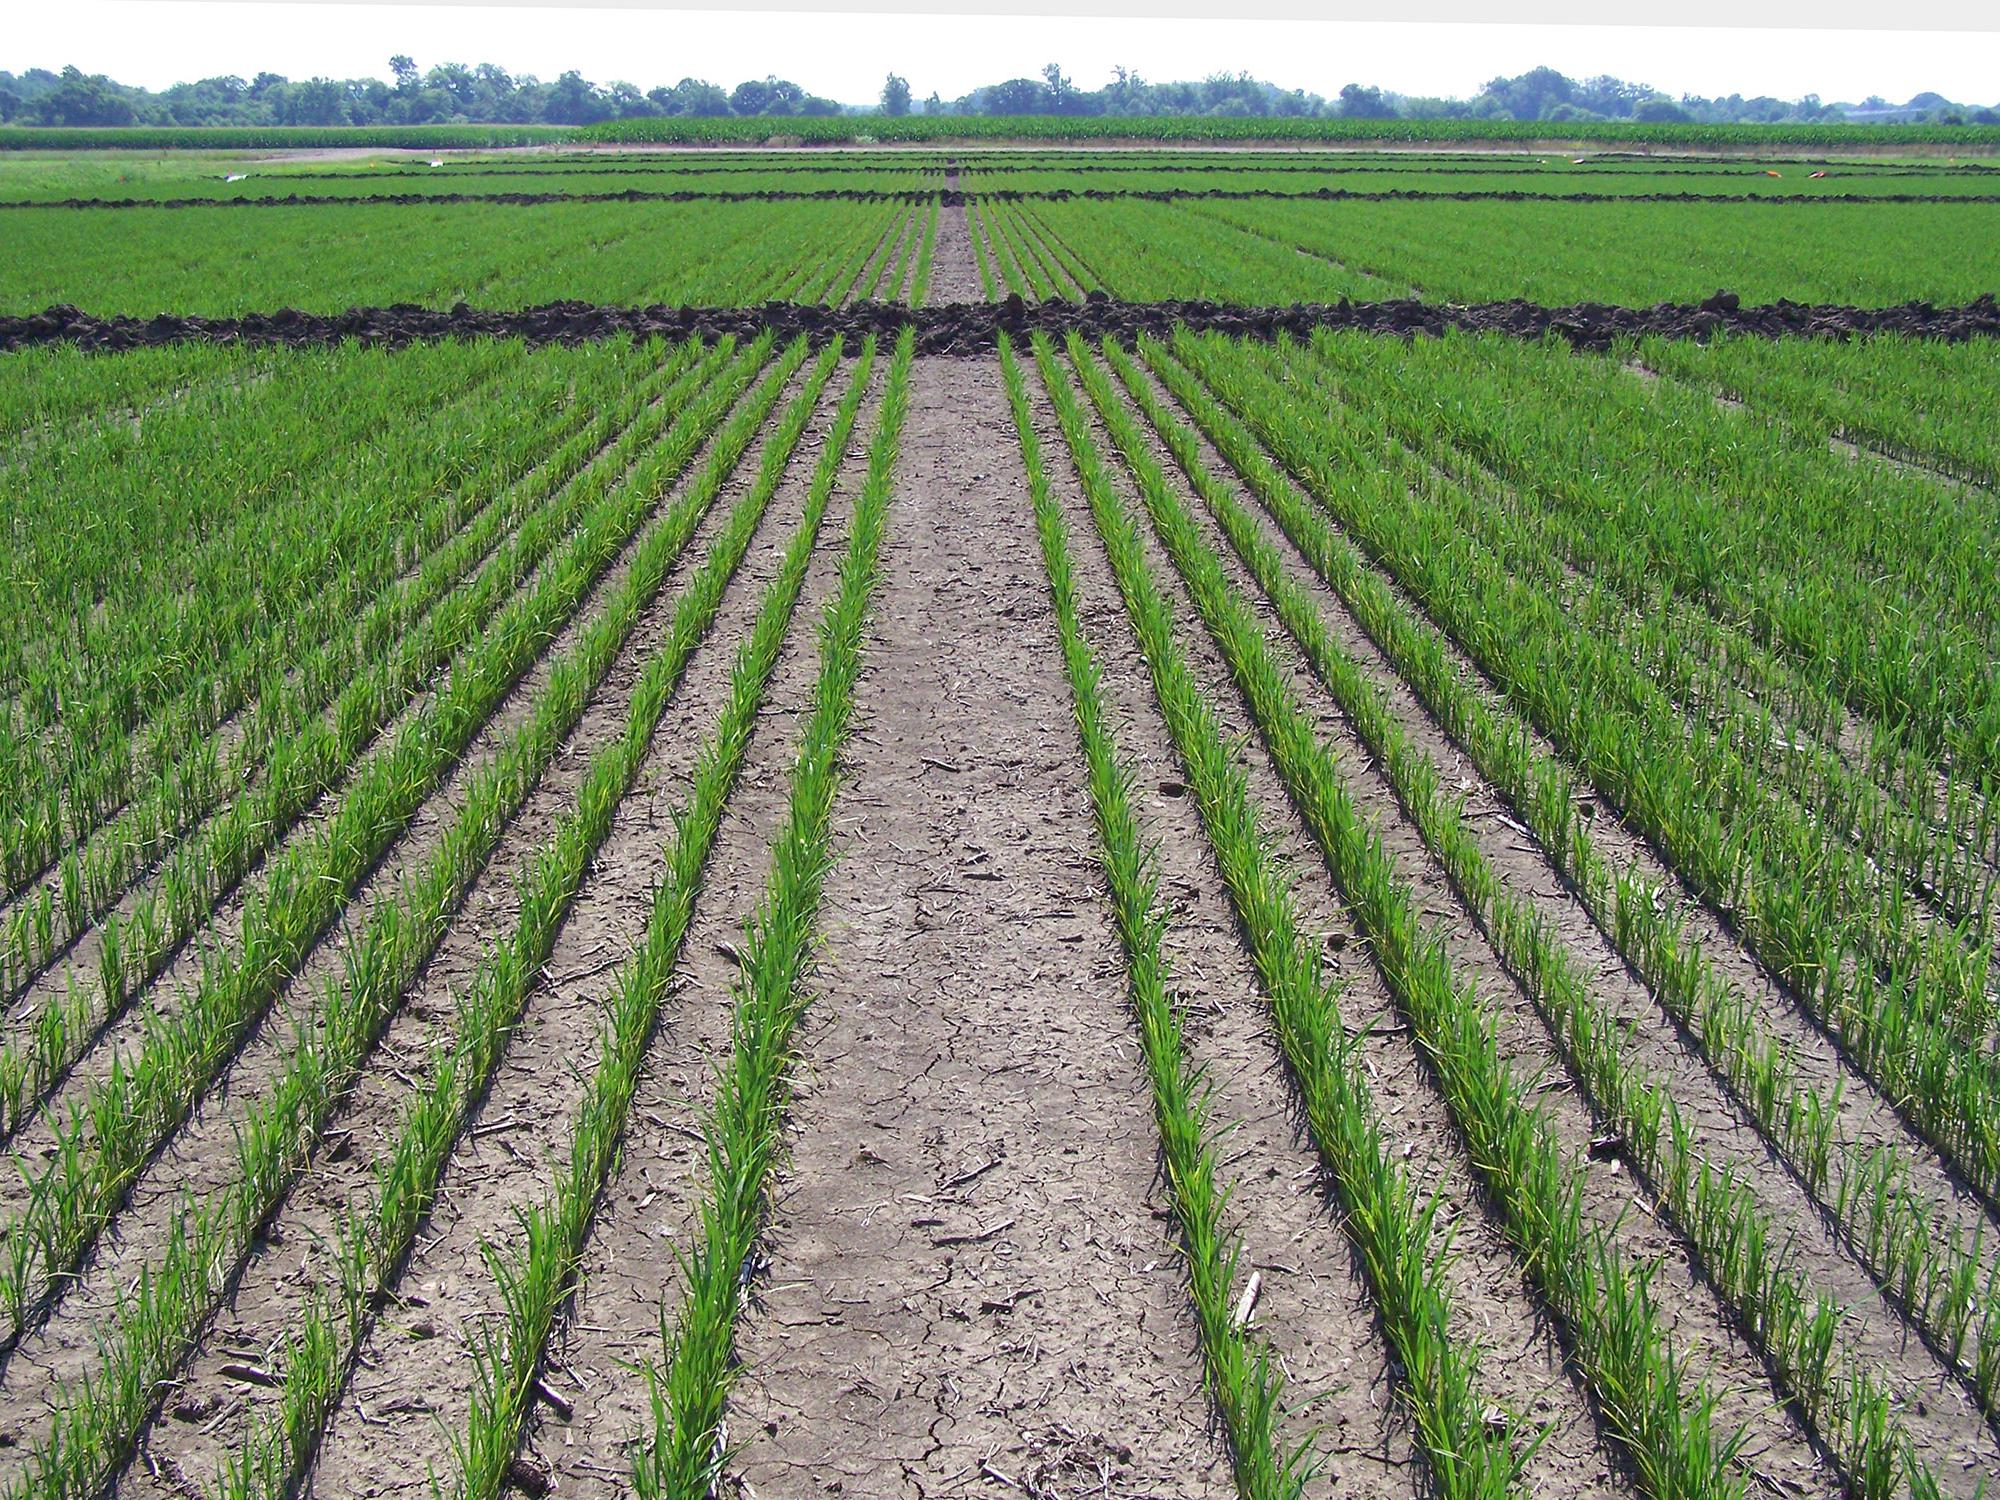 This 2016 rice field is growing the Thad variety of foundation seed stock at the North Mississippi Research and Extension Center in Verona, Mississippi. Most of the 2017 rice crop is at or beyond this growth stage that is ready for floodwaters. (File photo by Mississippi Foundation Seed Stock/Randy Vaughan)